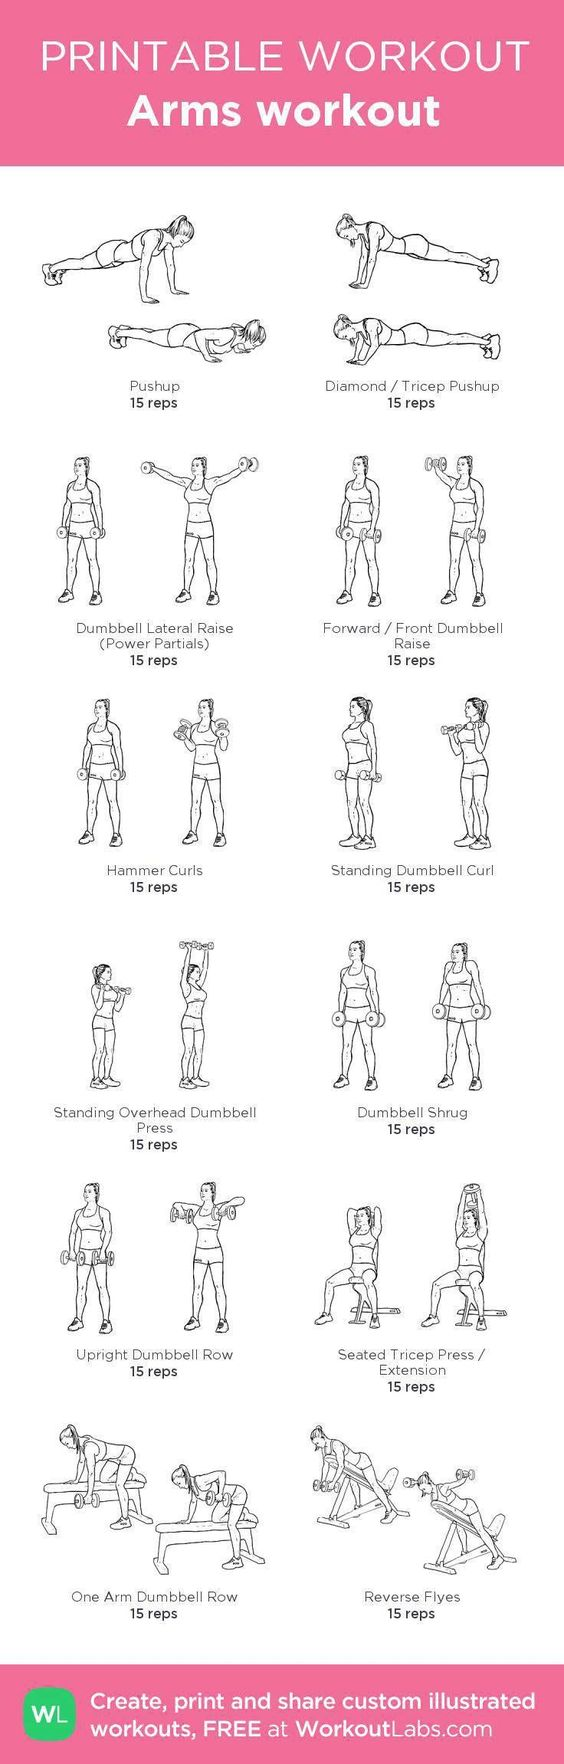 Need a workout to strengthen and tone your arms? Try these efficient dumbbell routines specialized for women.: